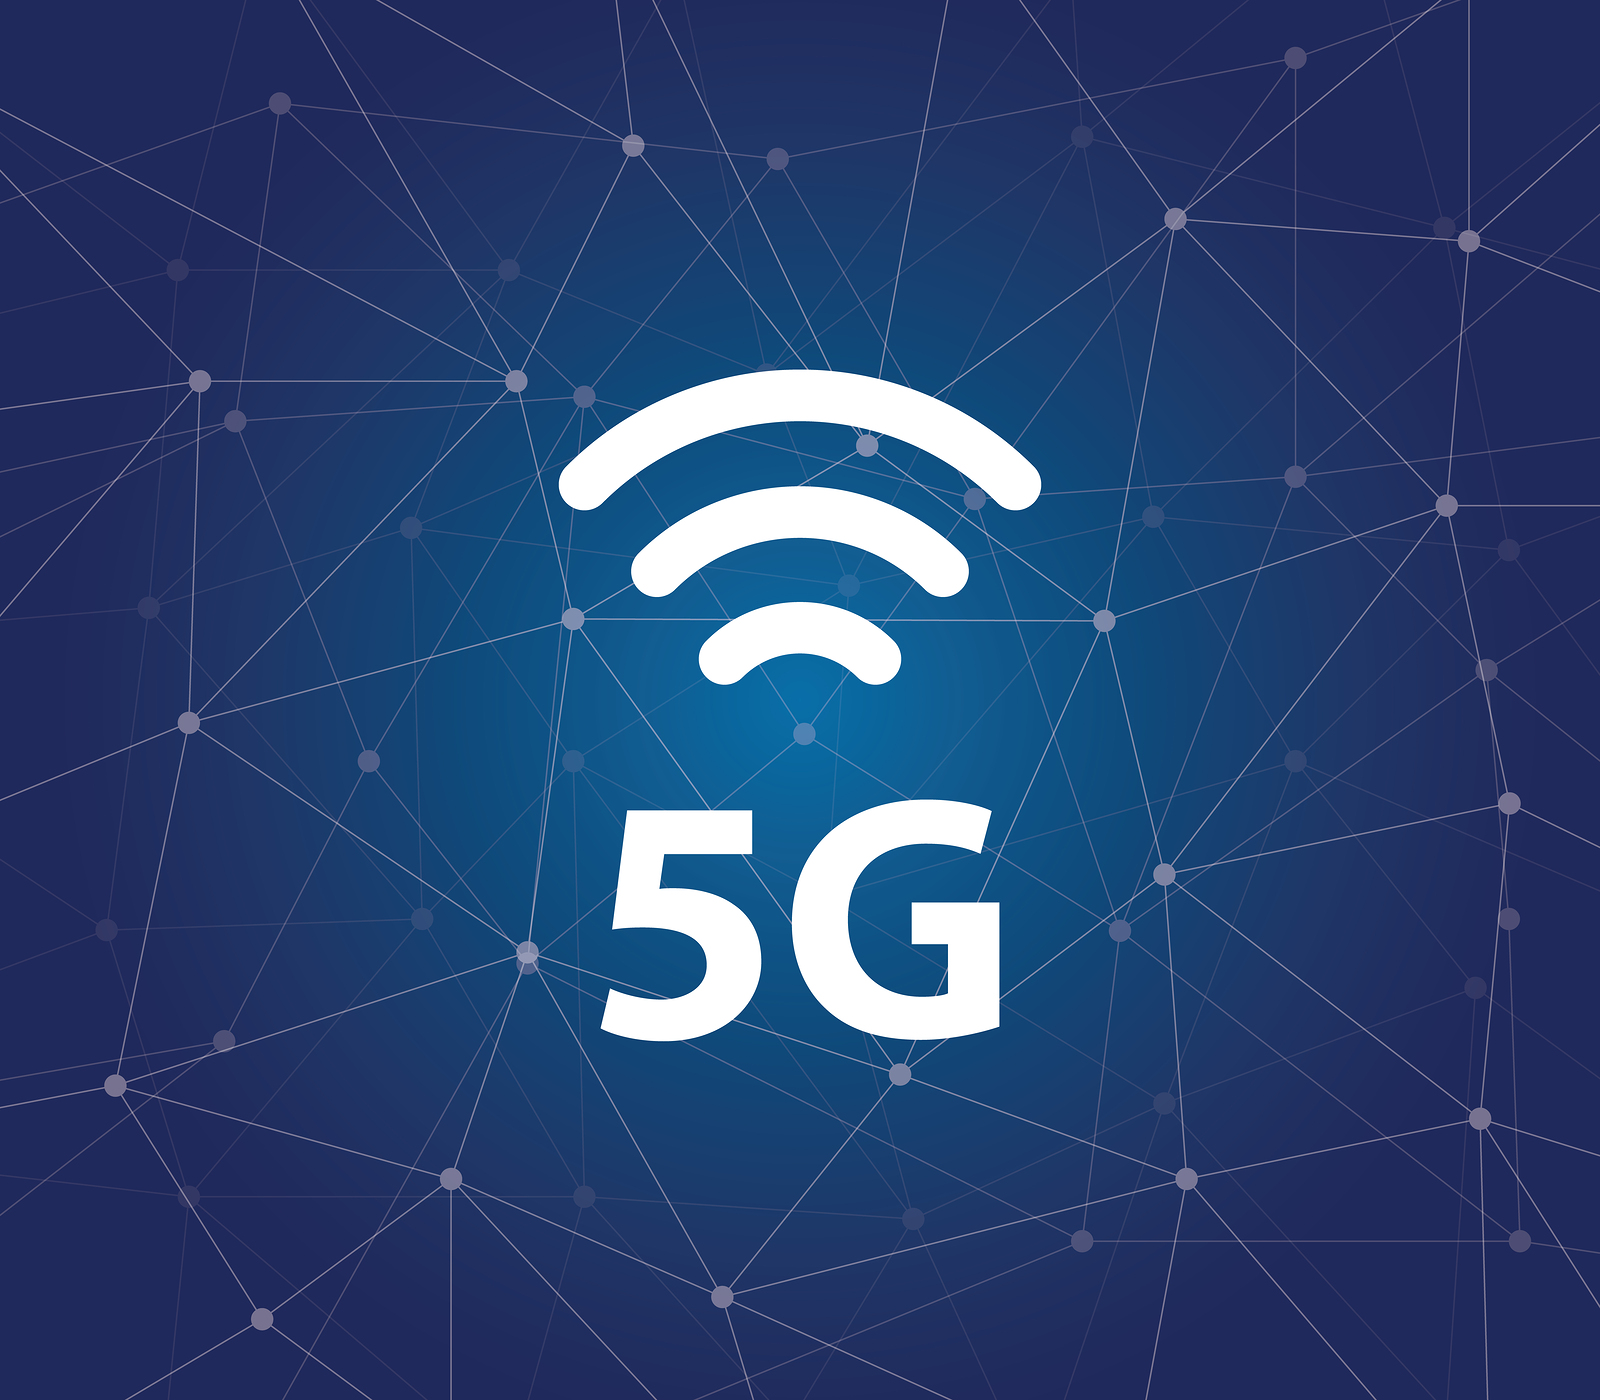 5g Archives Insidesources Fiber Optic Cable Google Patents On Wiring Home With Deploying Wireless Speeds 10 To 100 Times Faster Than 4g Will Cost 130 150 Billion In Cabling Alone Over The Next 5 7 Years